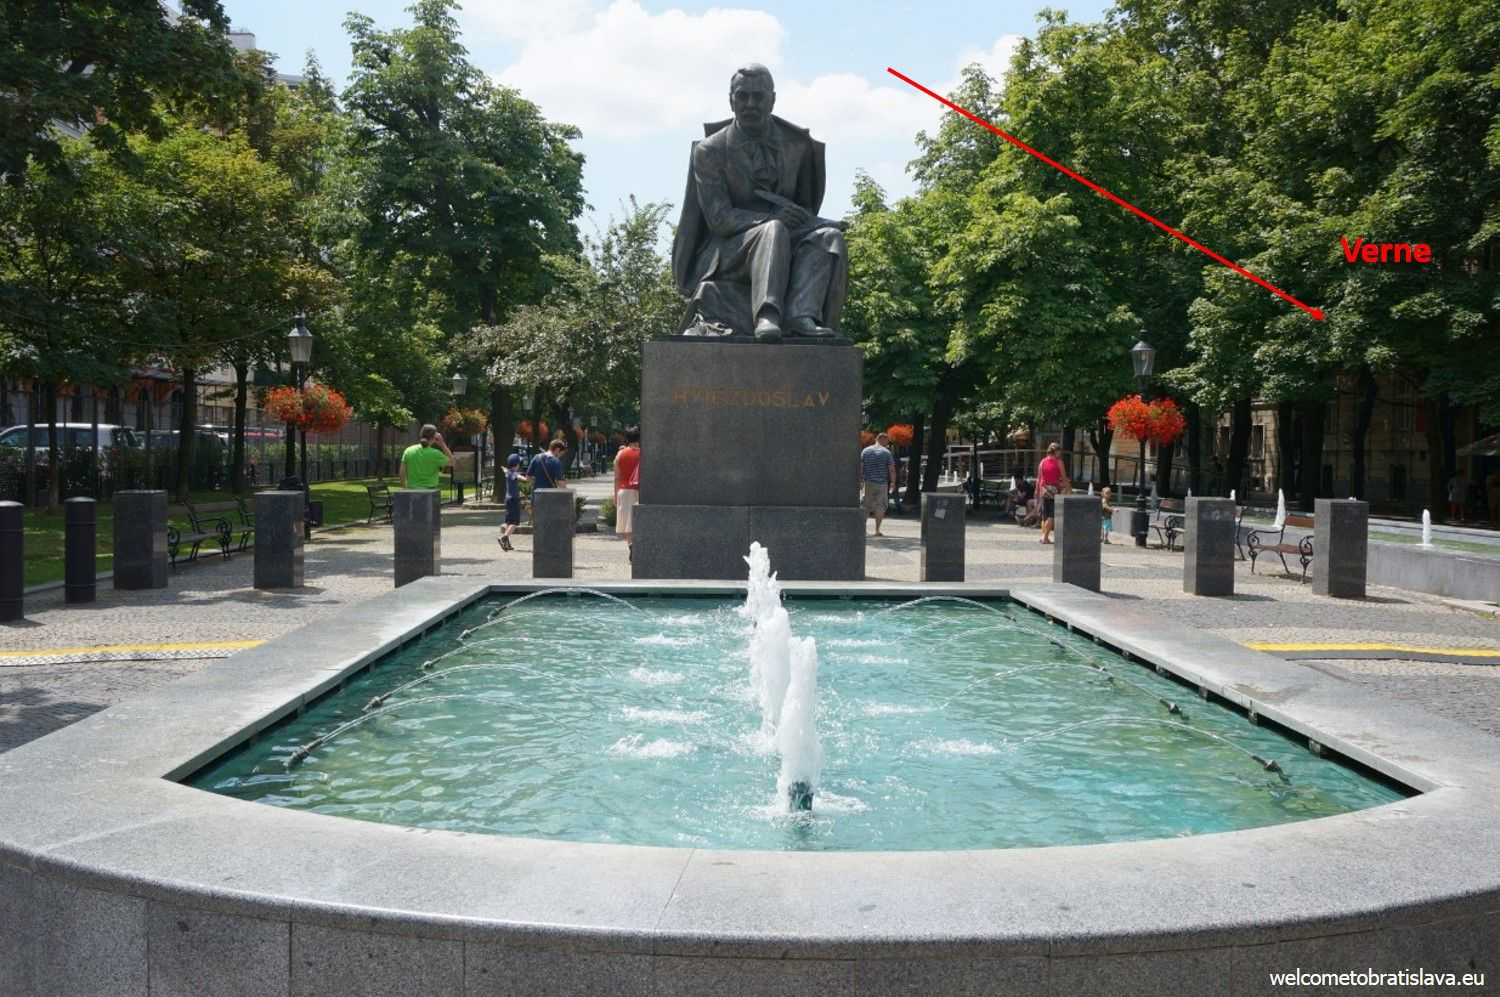 Verne is located by the right side from this statue, displaying an important Slovak poet, Mr P. O. Hviezdoslav